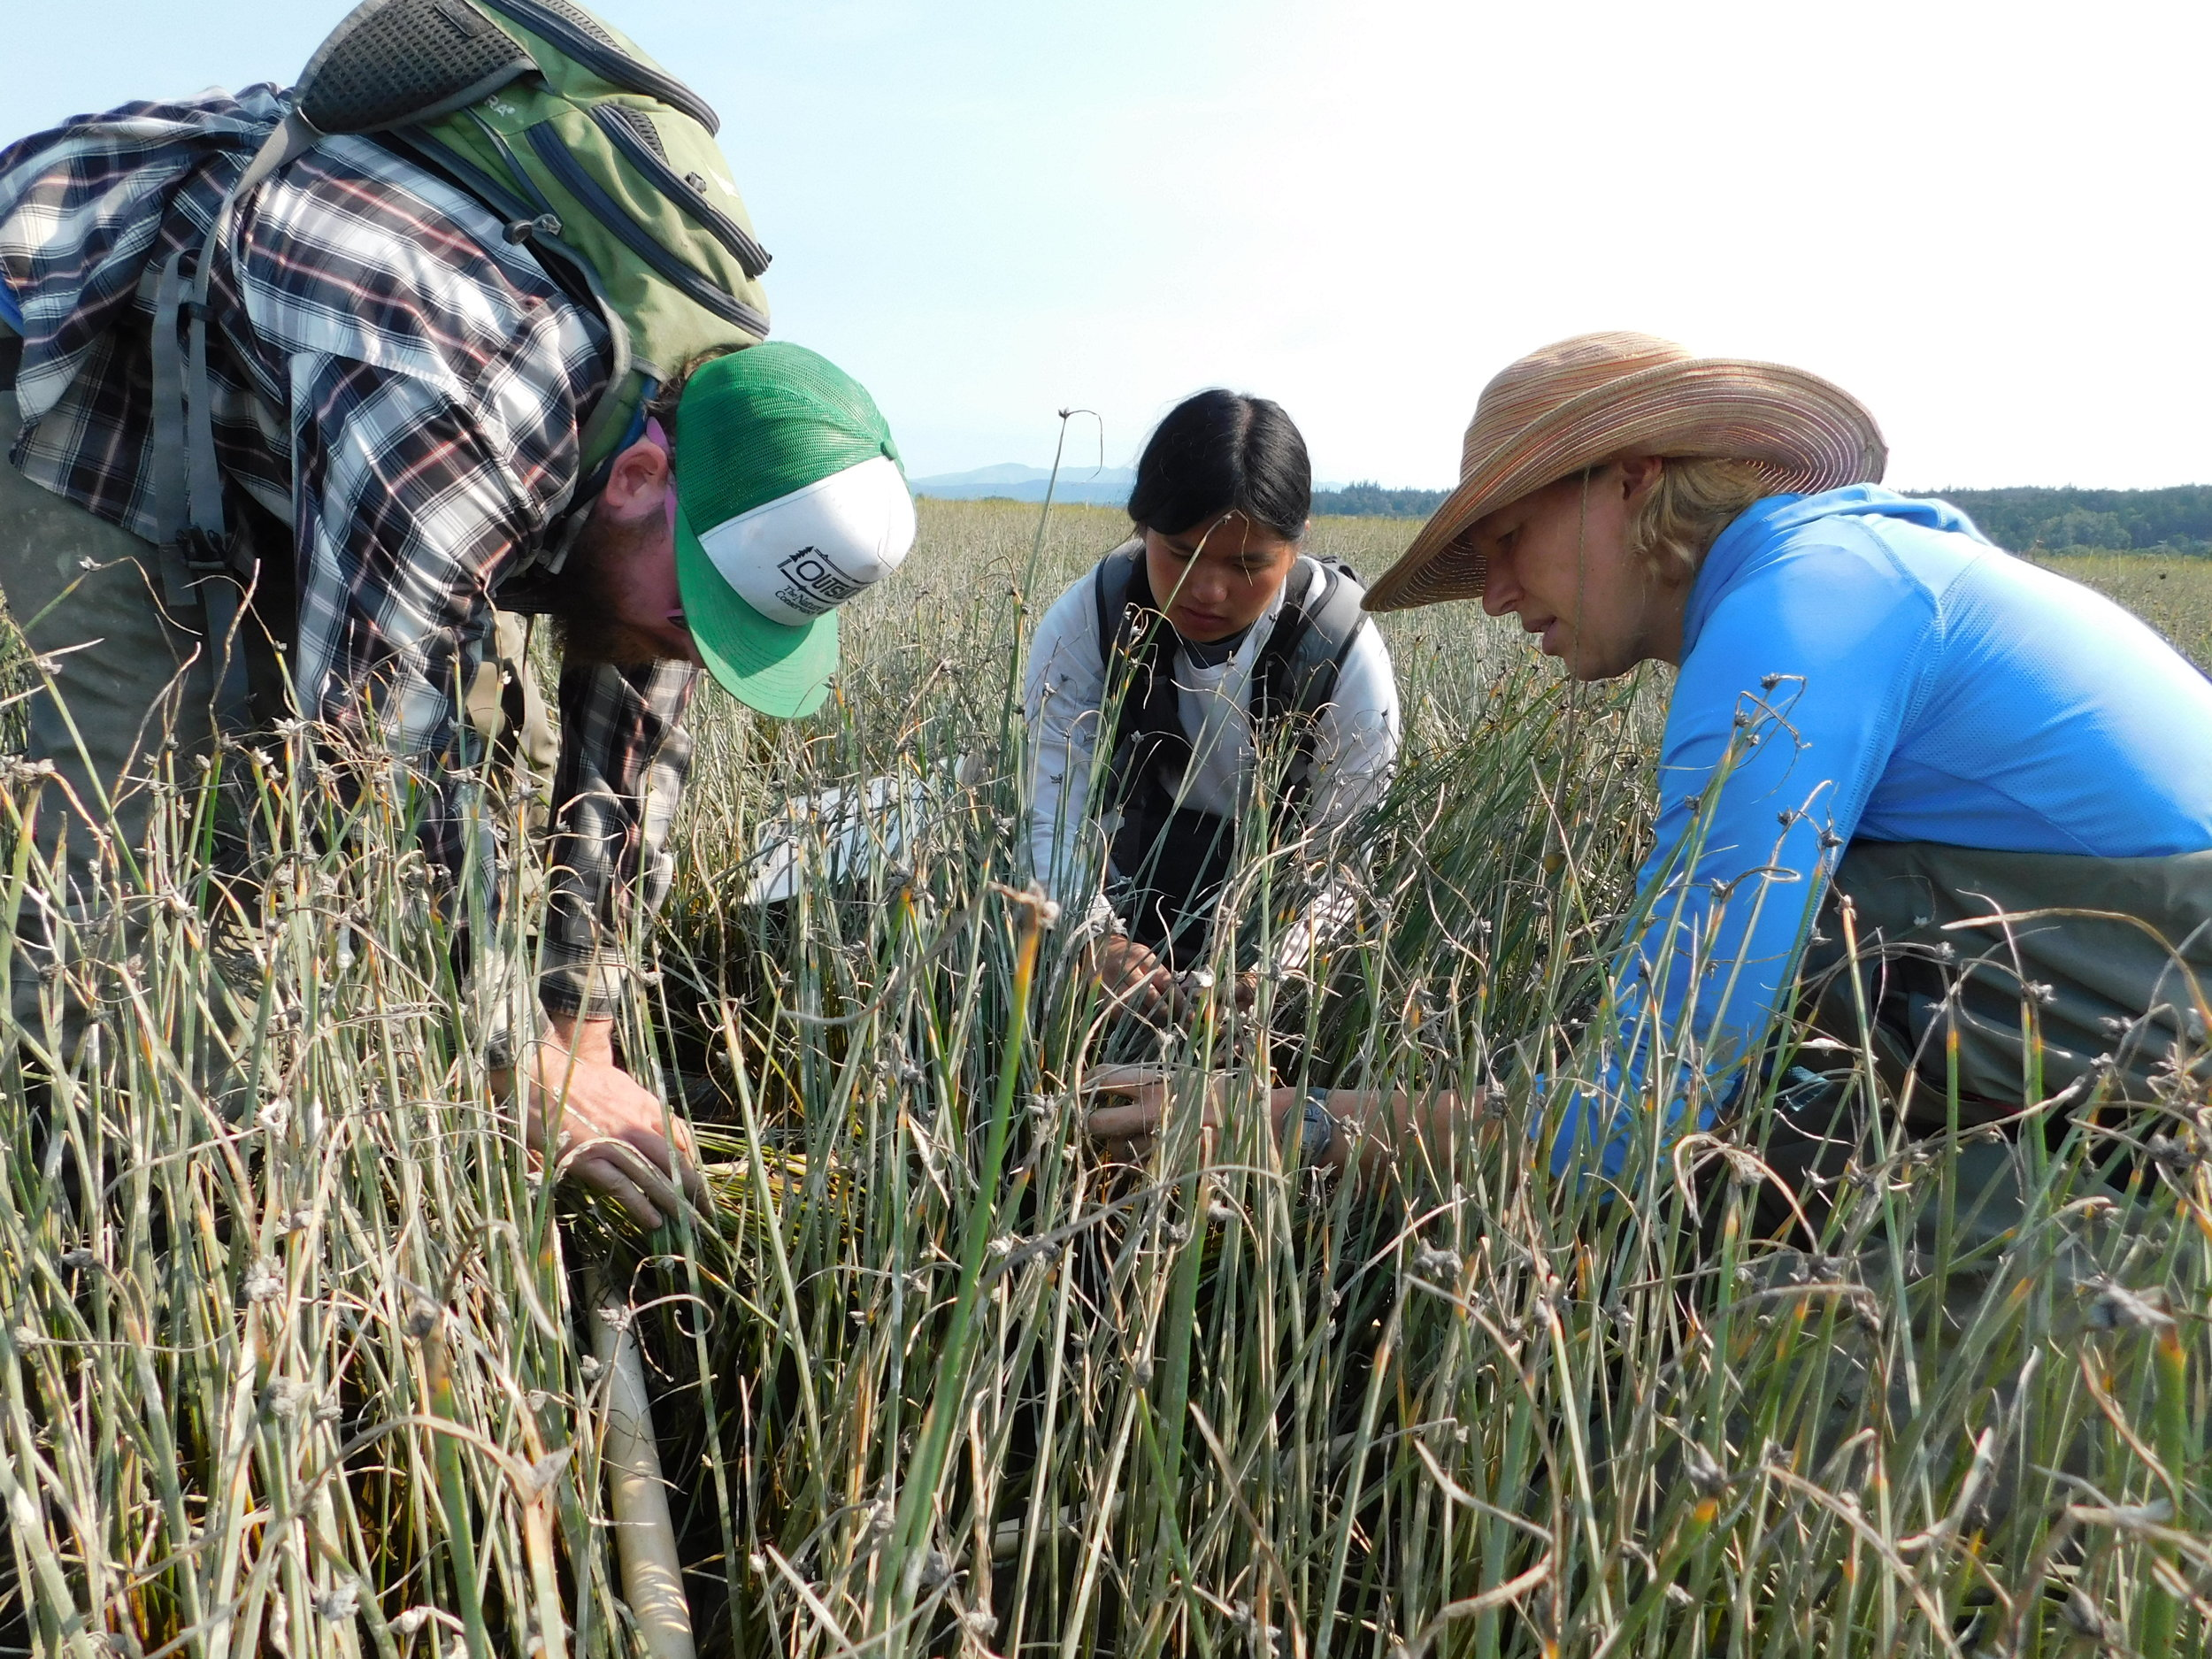 Our research team evaluates restoration progress at Port Susan Bay near Stanwood, WA. Photo by Molly Bogeberg.